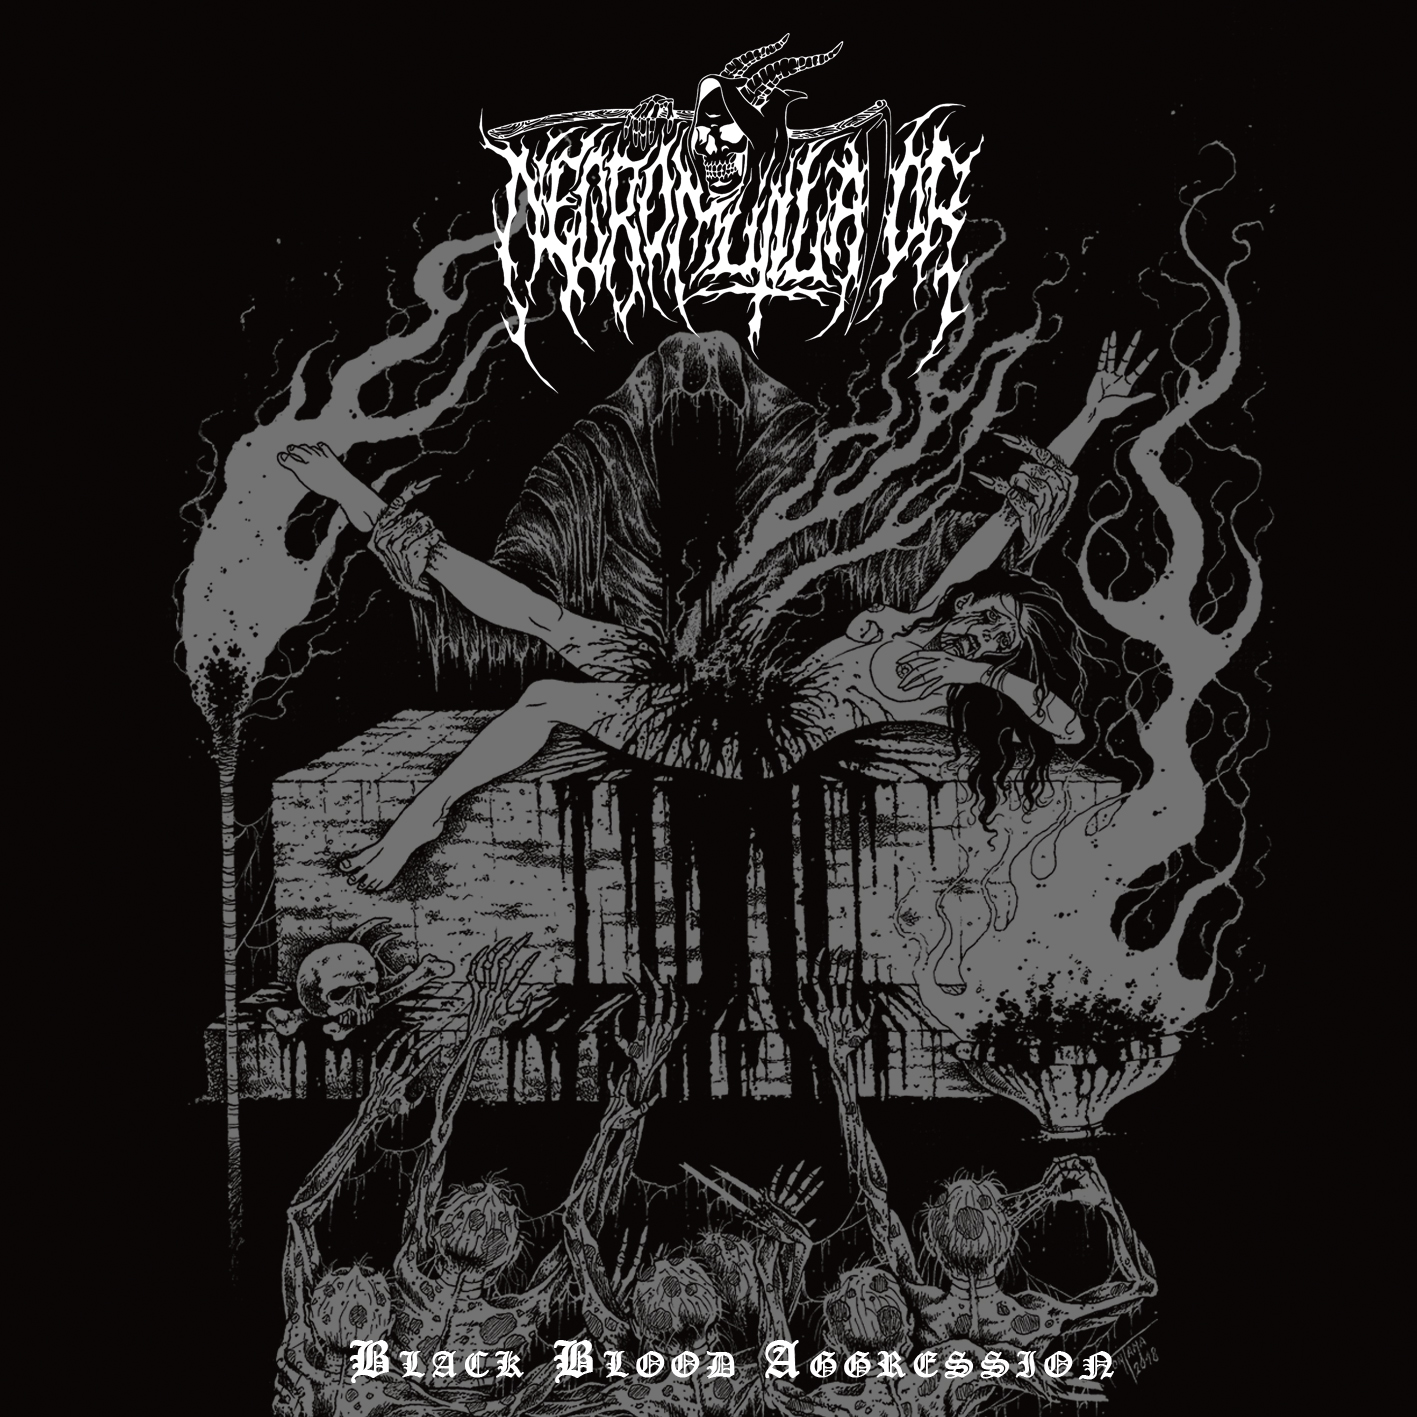 Necromutilator - Black Blood Aggression Review